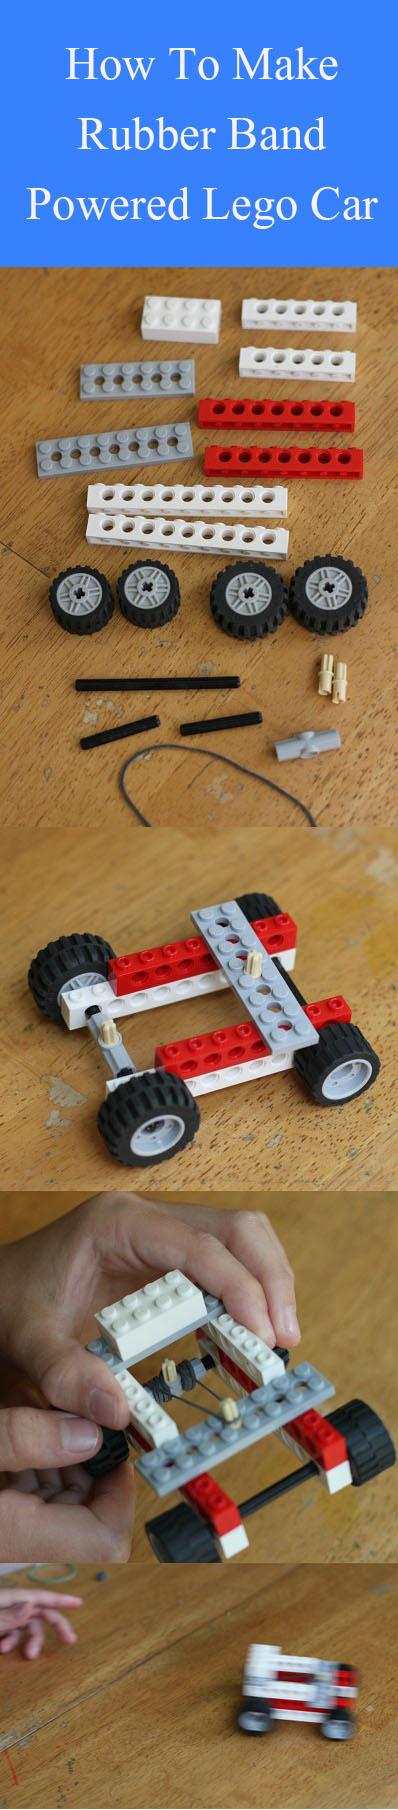 DIY Rubber Band Powered Lego Car